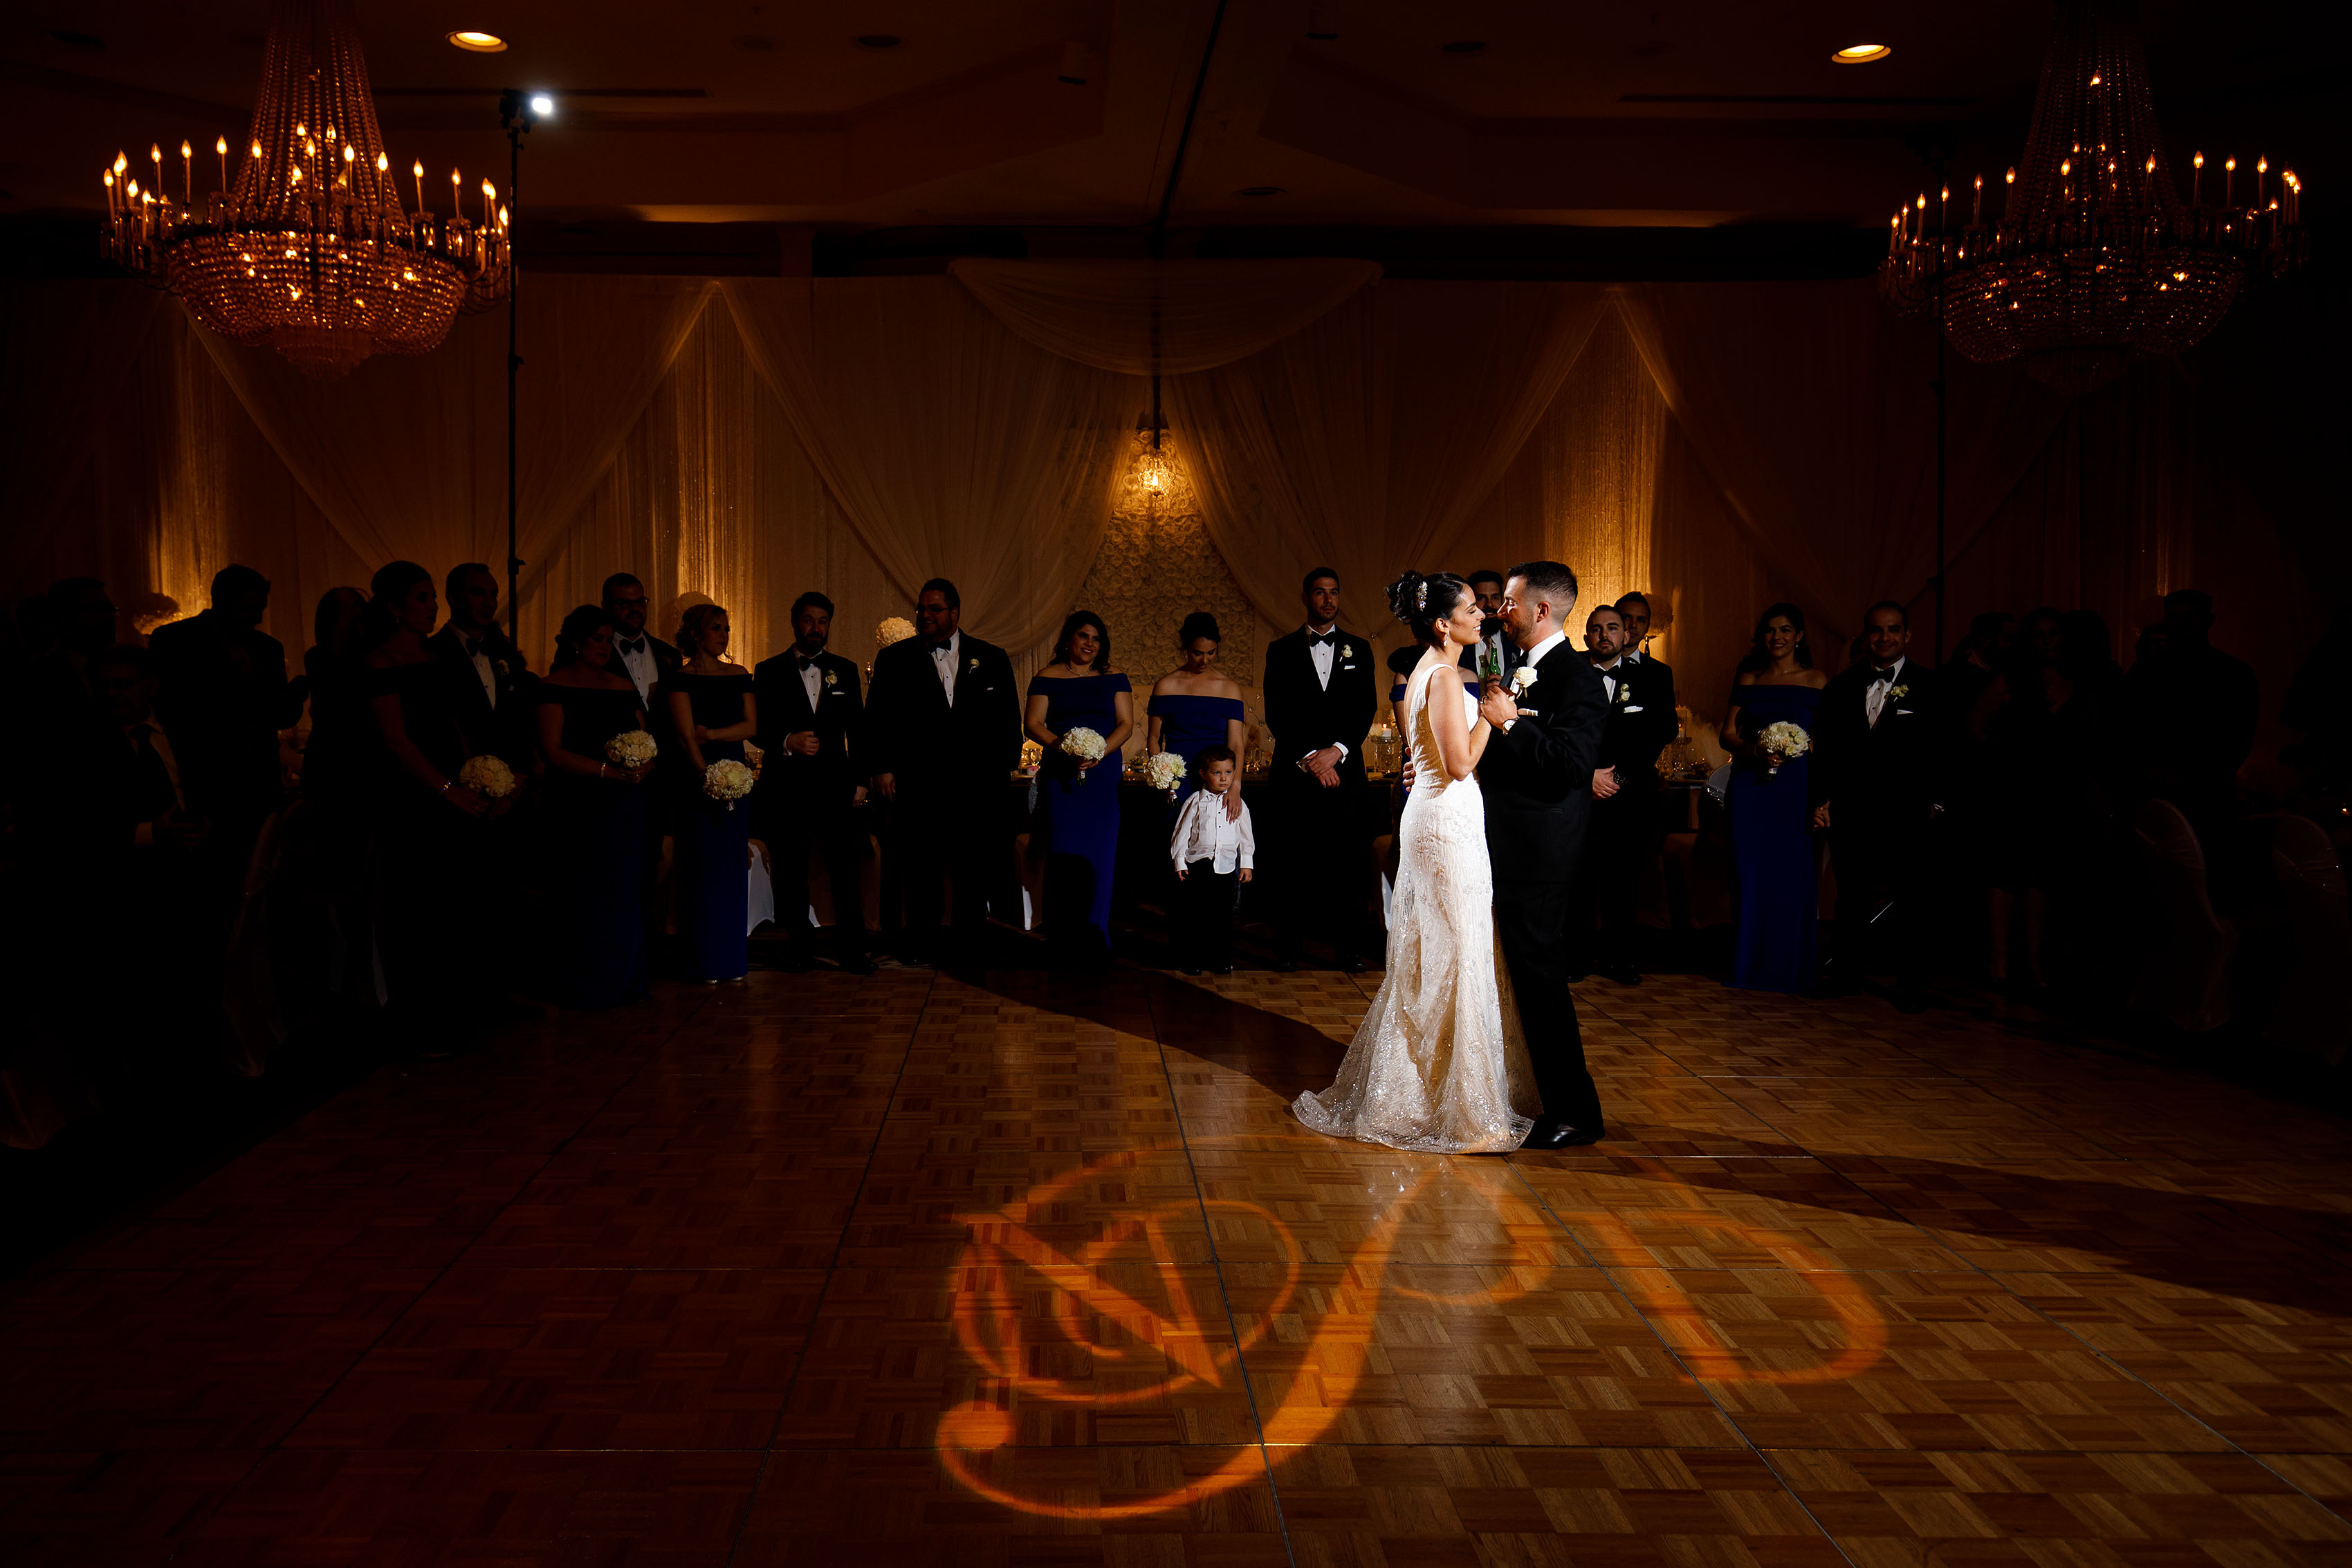 Nicole and Demetris dance together at the Sheraton Albuquerque uptown during their Greek wedding reception